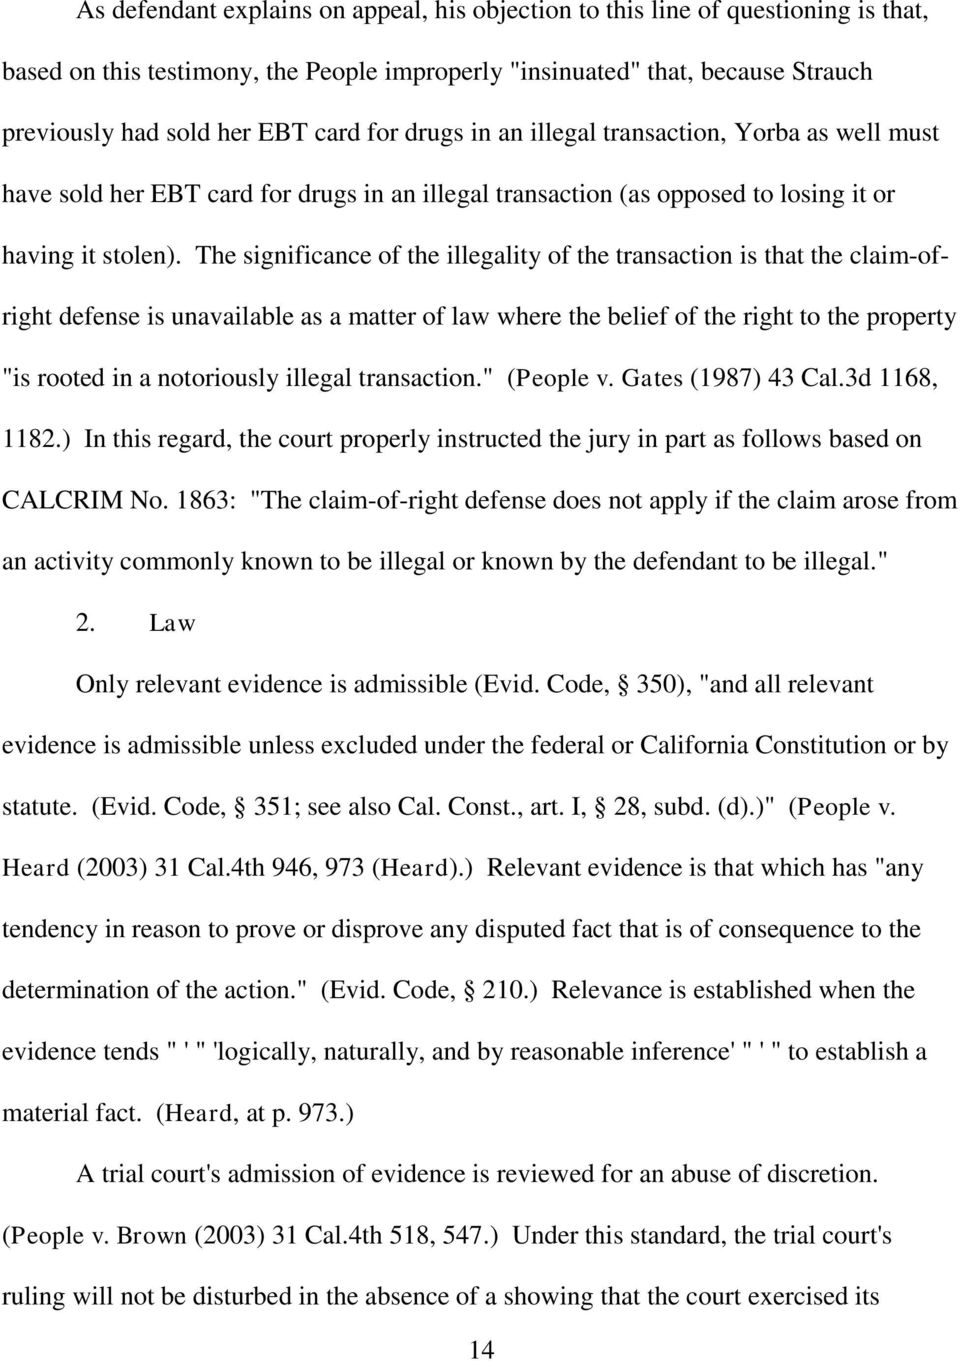 "The significance of the illegality of the transaction is that the claim-ofright defense is unavailable as a matter of law where the belief of the right to the property ""is rooted in a notoriously"